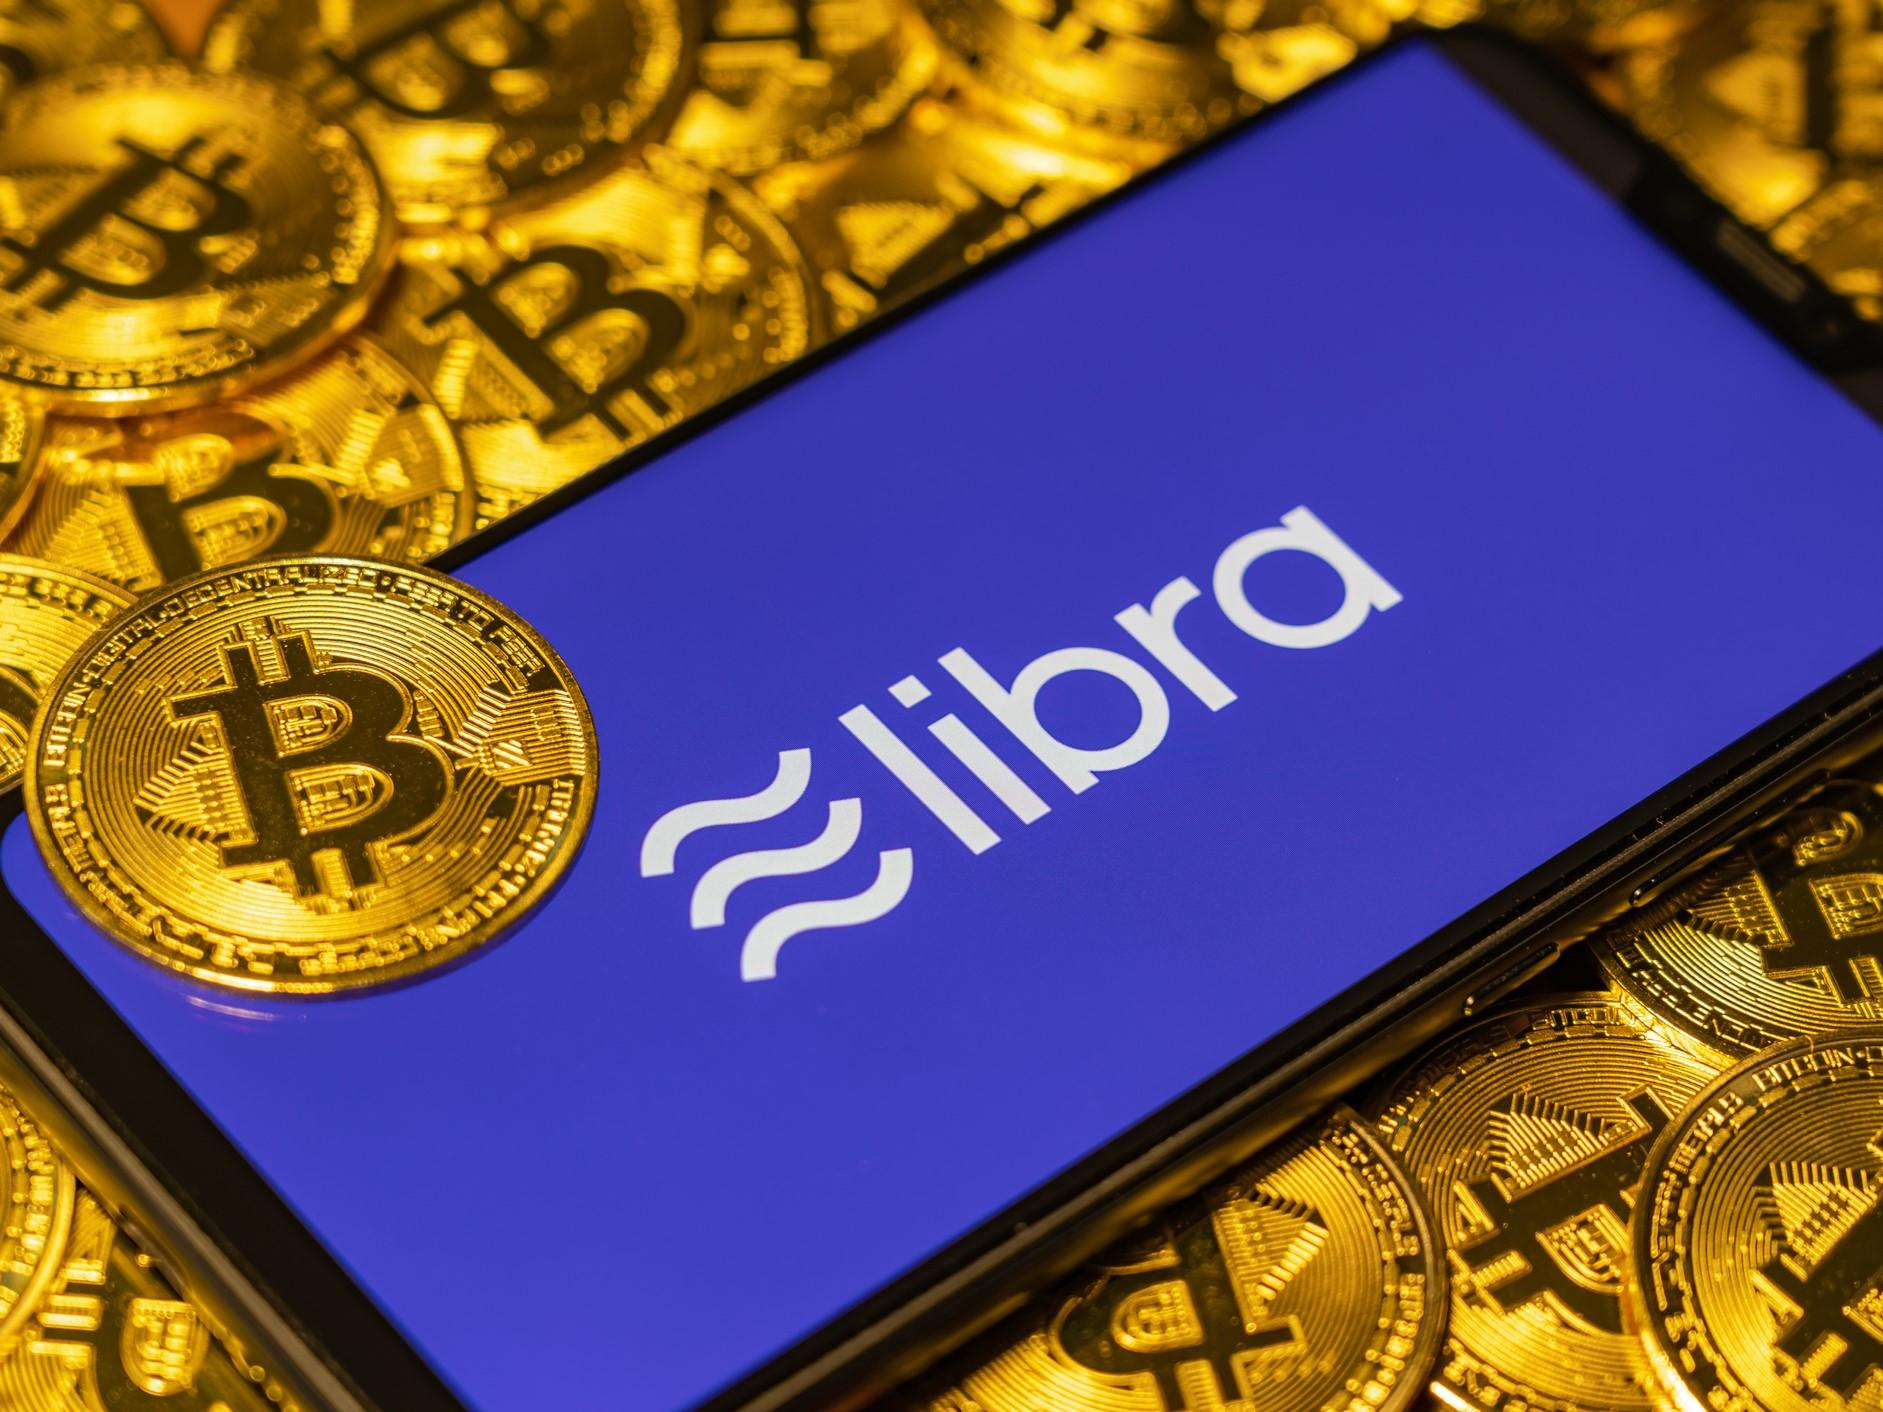 Facebook offers $10,000 to anyone who can hack its Libra cryptocurrency